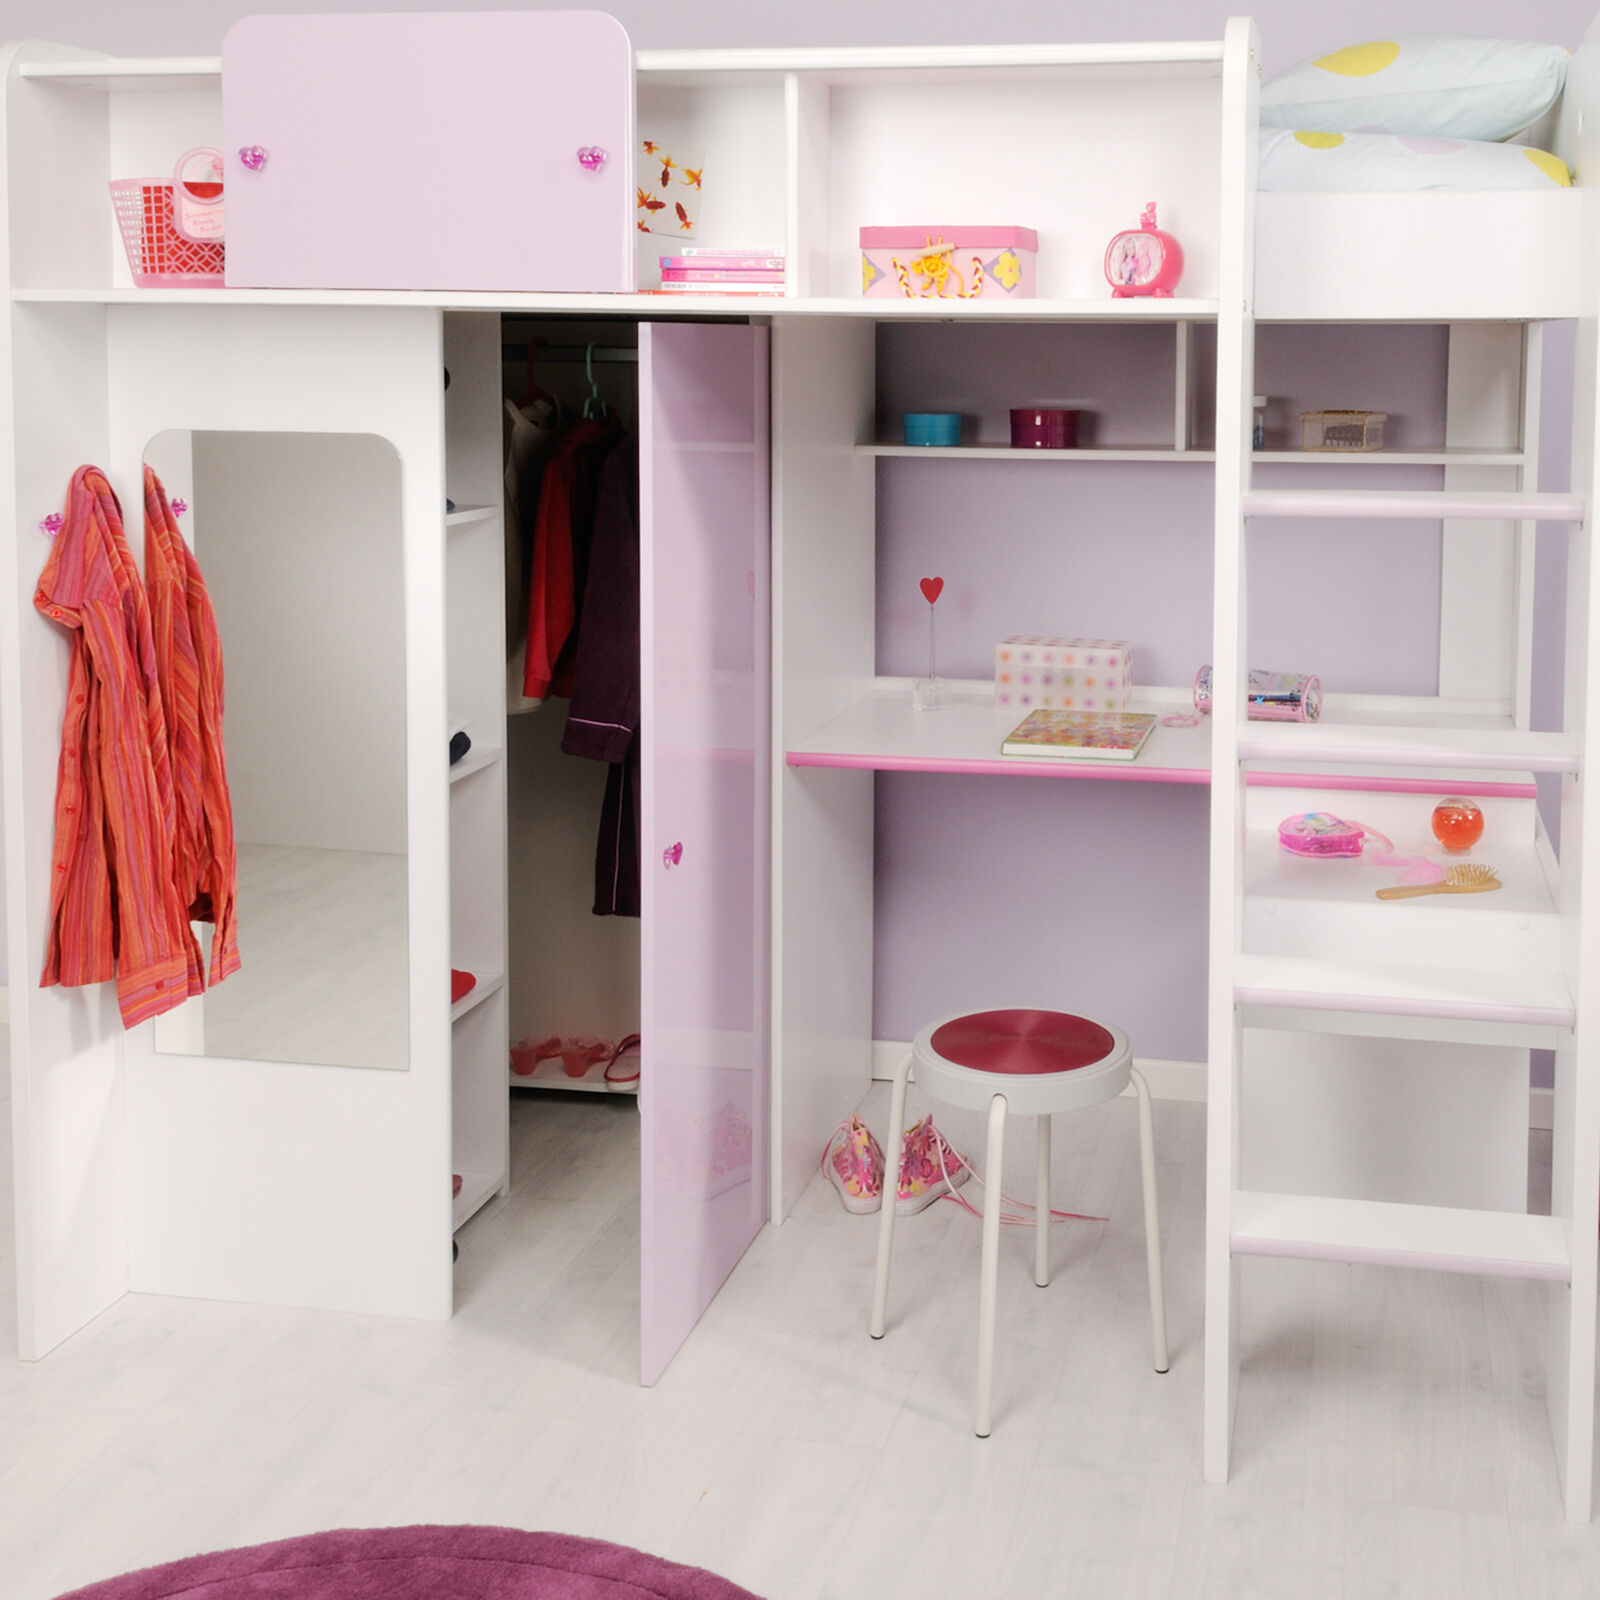 m dchen kombibett kinderbett lila weiss kleiderschrank hochbett mit schreibtisch ebay. Black Bedroom Furniture Sets. Home Design Ideas